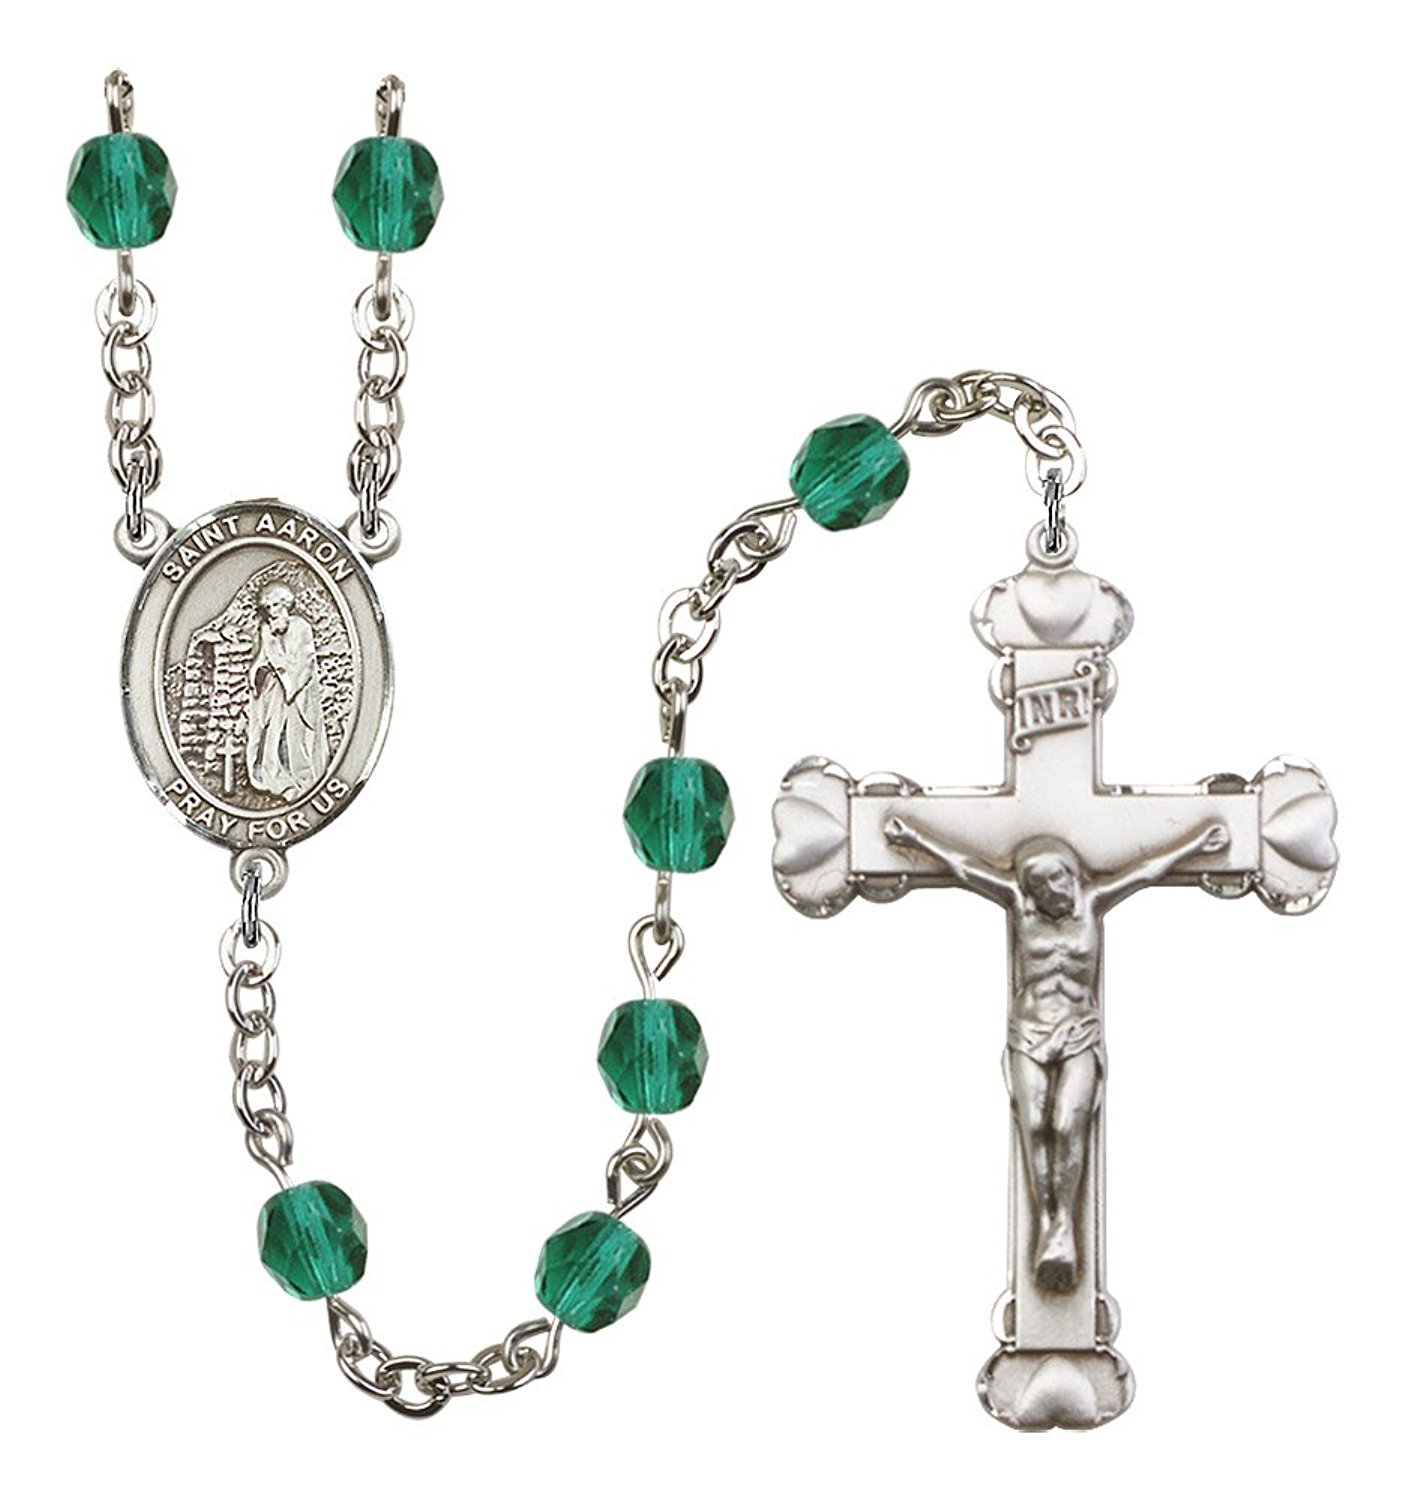 Silver Finish St. Aaron Rosary with 6mm Zircon Color Fire Polished Beads, St. Aaron Center, and 1 5/8 x 1 inch Crucifix, Gift Boxed